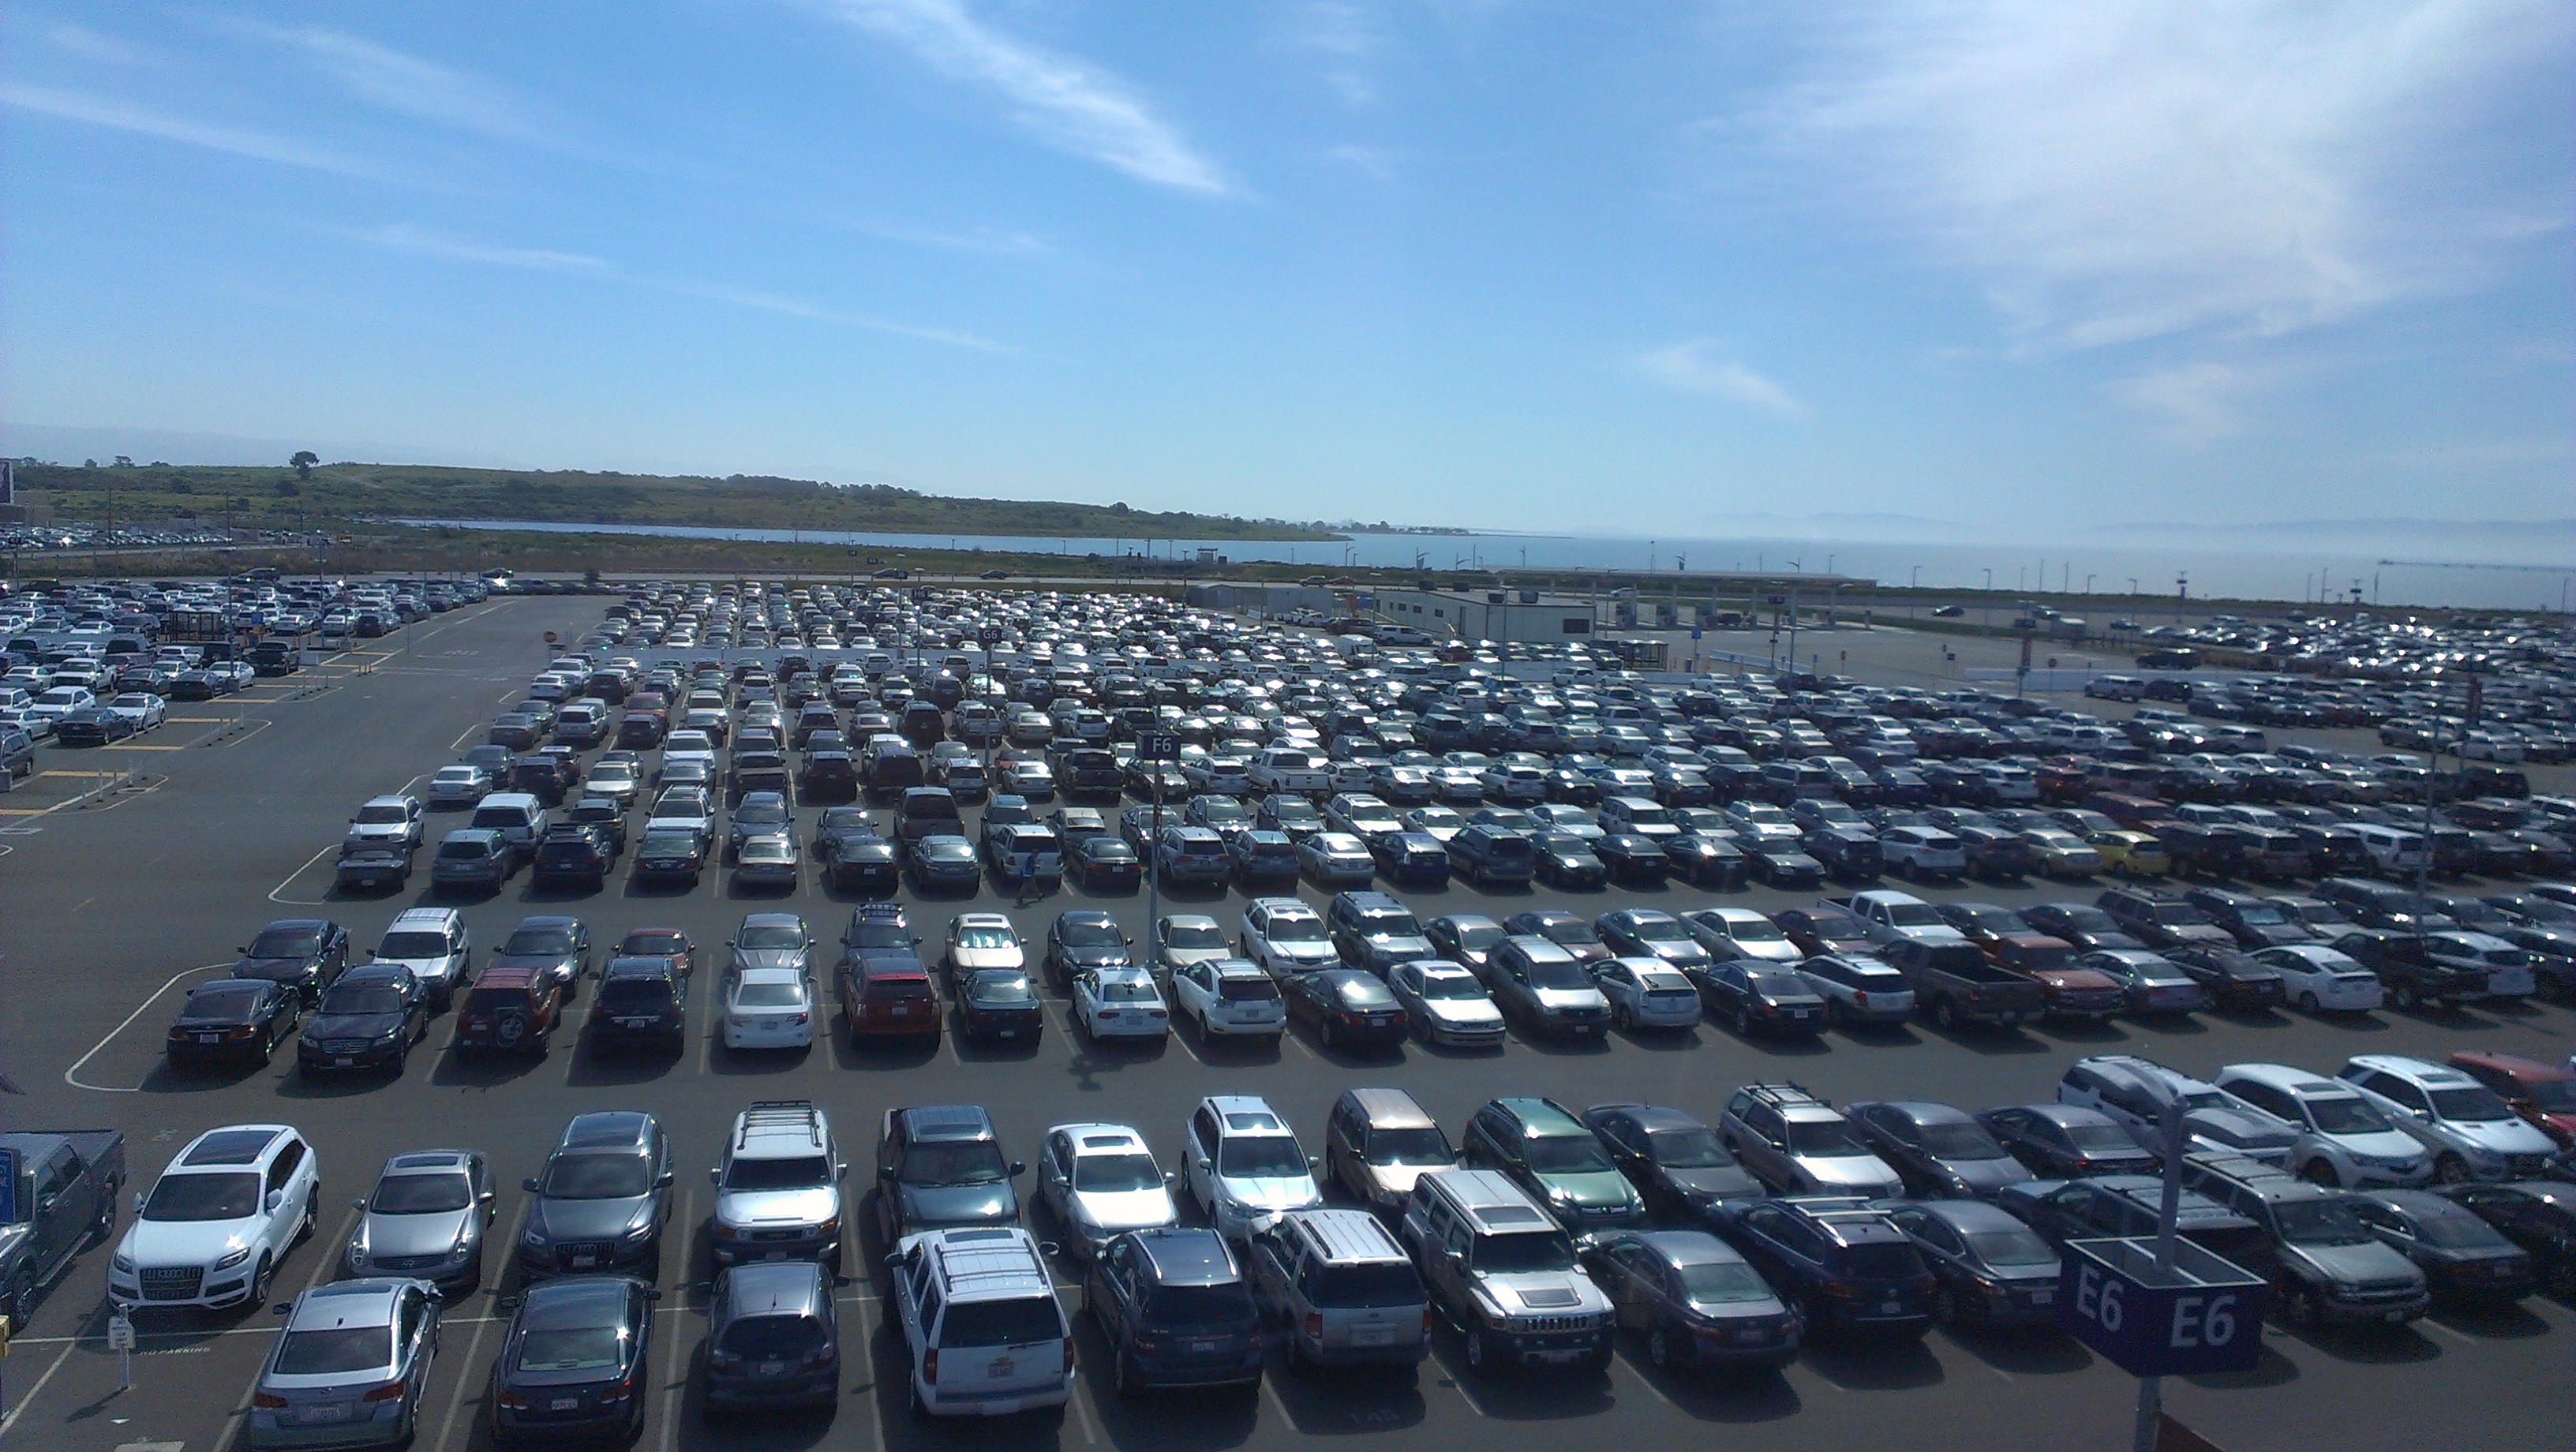 Meet-and-greet parking services